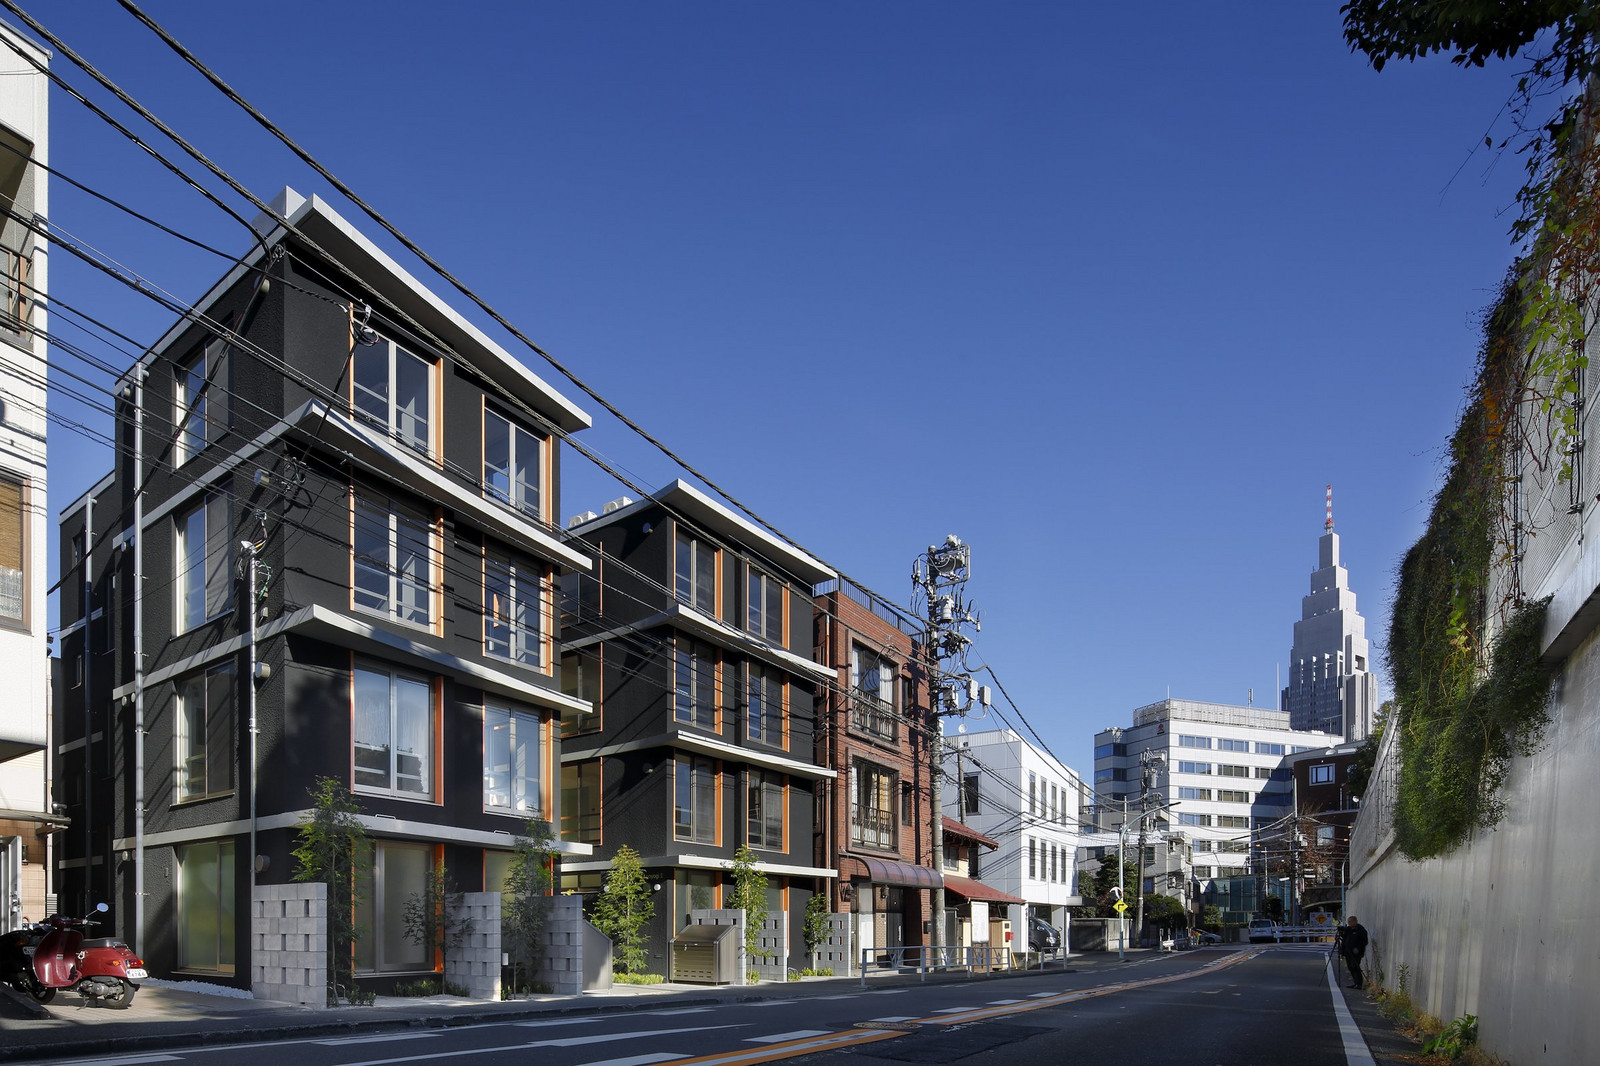 1243,44-apartment KURO 代々木Ⅱ・Ⅲ